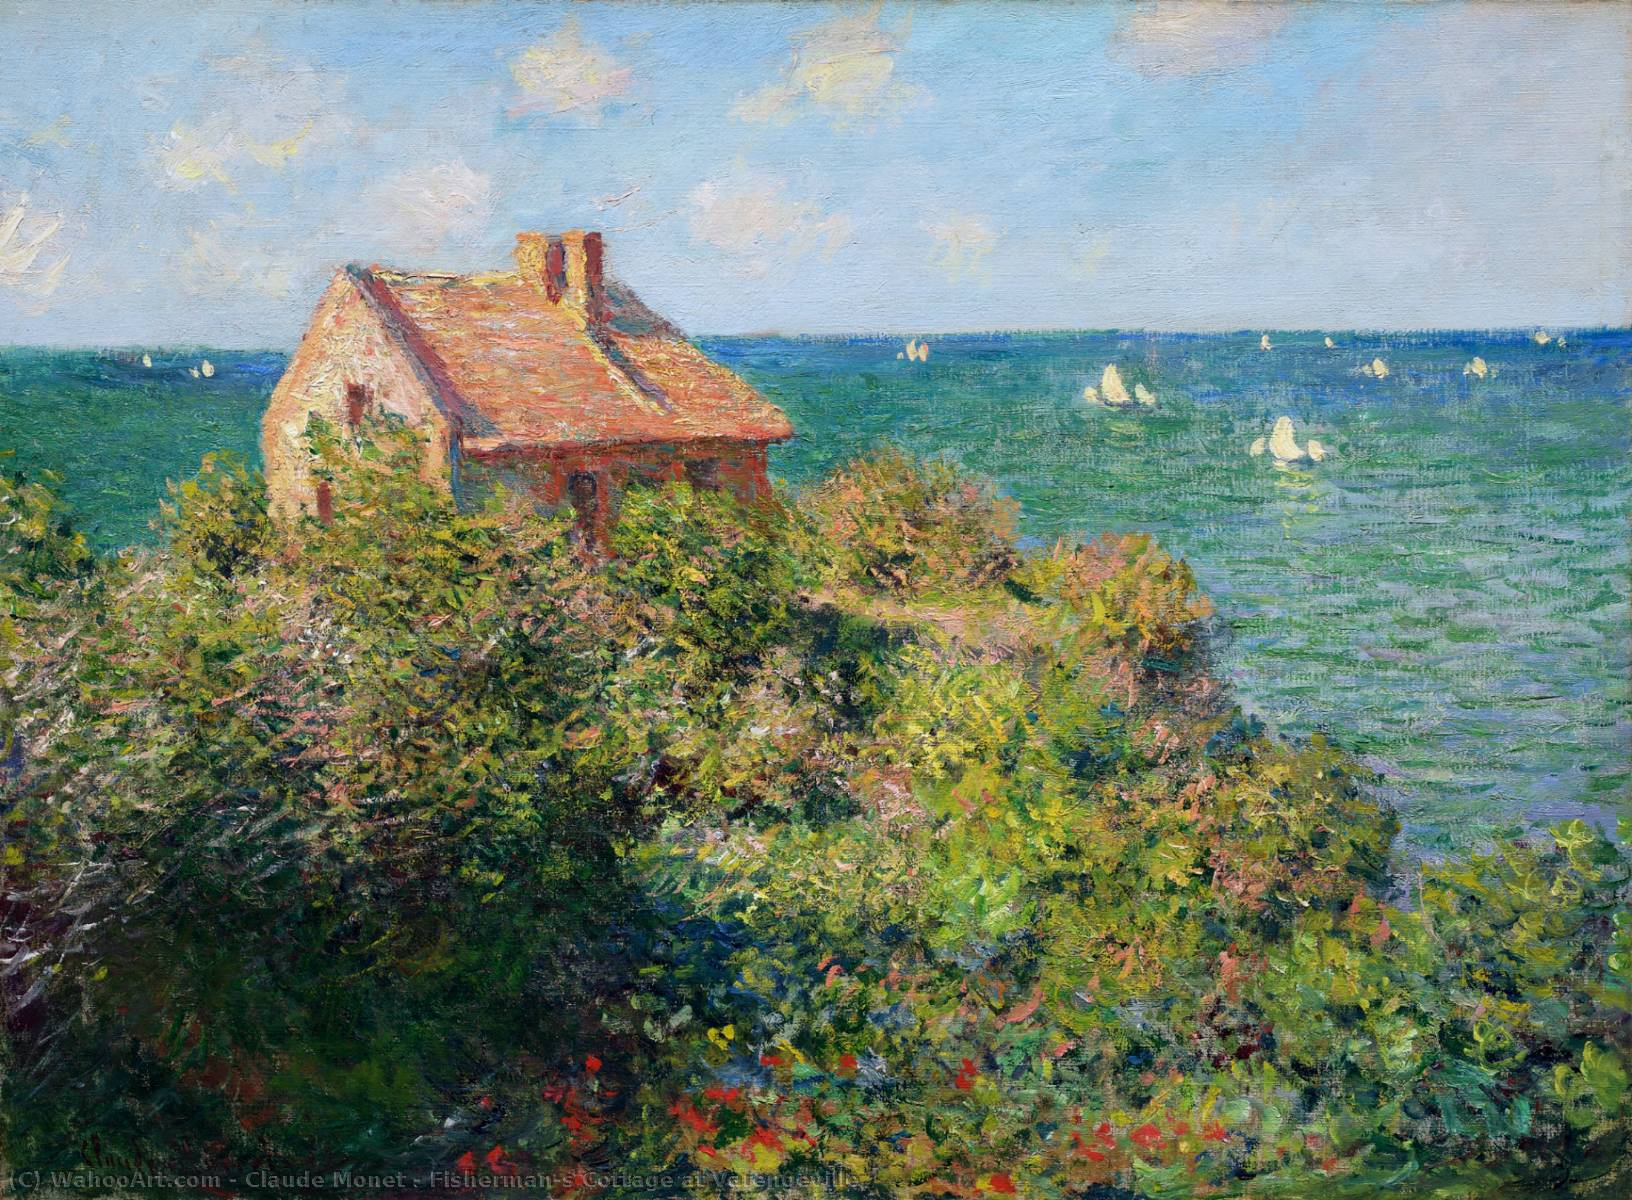 Compra Riproduzioni D'arte Del Museo | Fisherman's cottage a varengeville di Claude Monet | Most-Famous-Paintings.com